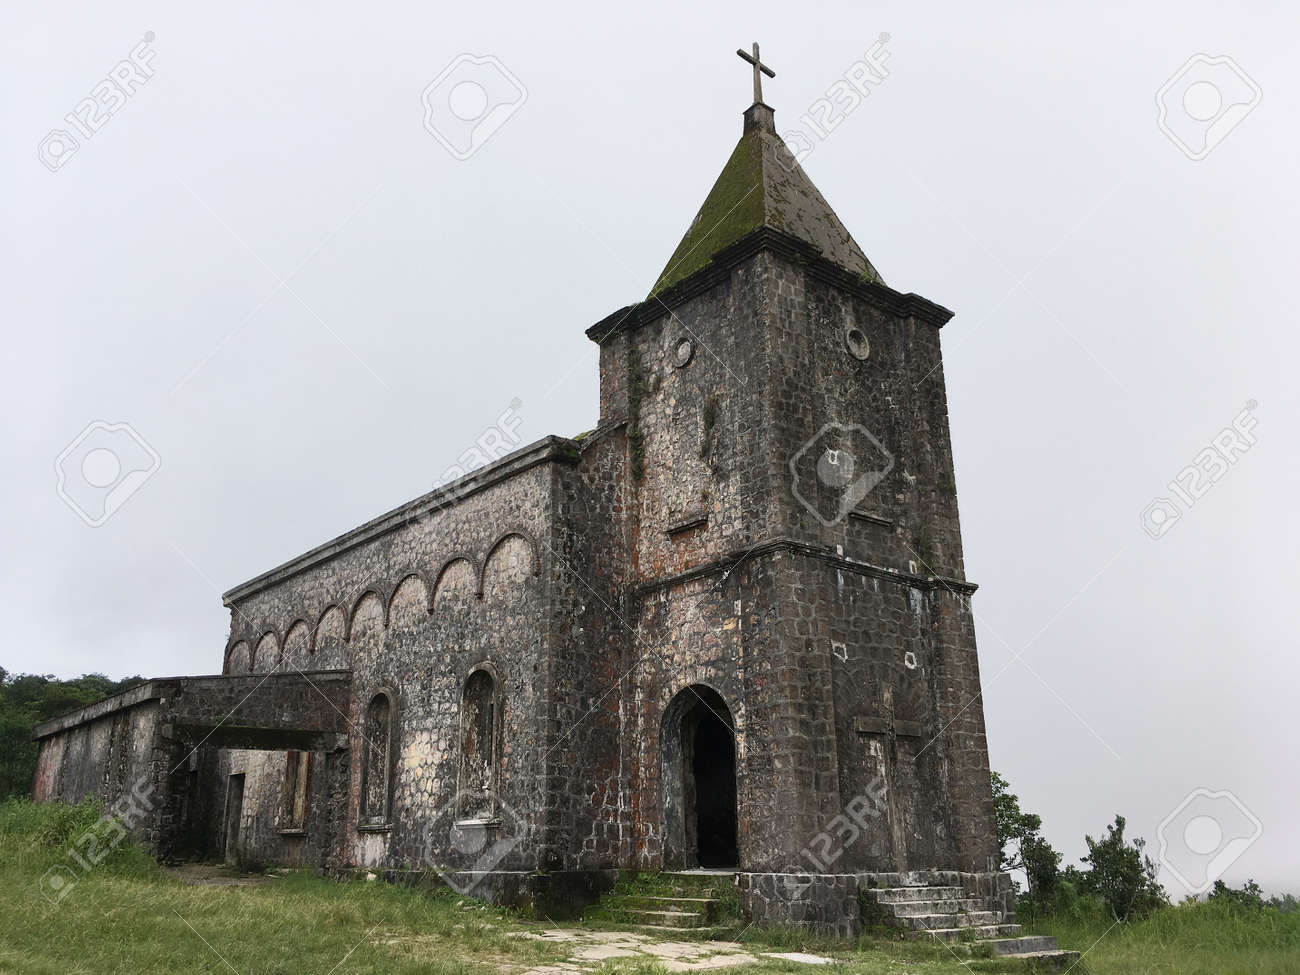 A ruined old catholic church at Bokor mountain near Kampot in Cambodia. The mountain used to be a French colonial hill station resort and site of a royal summer vacation home. - 166666323